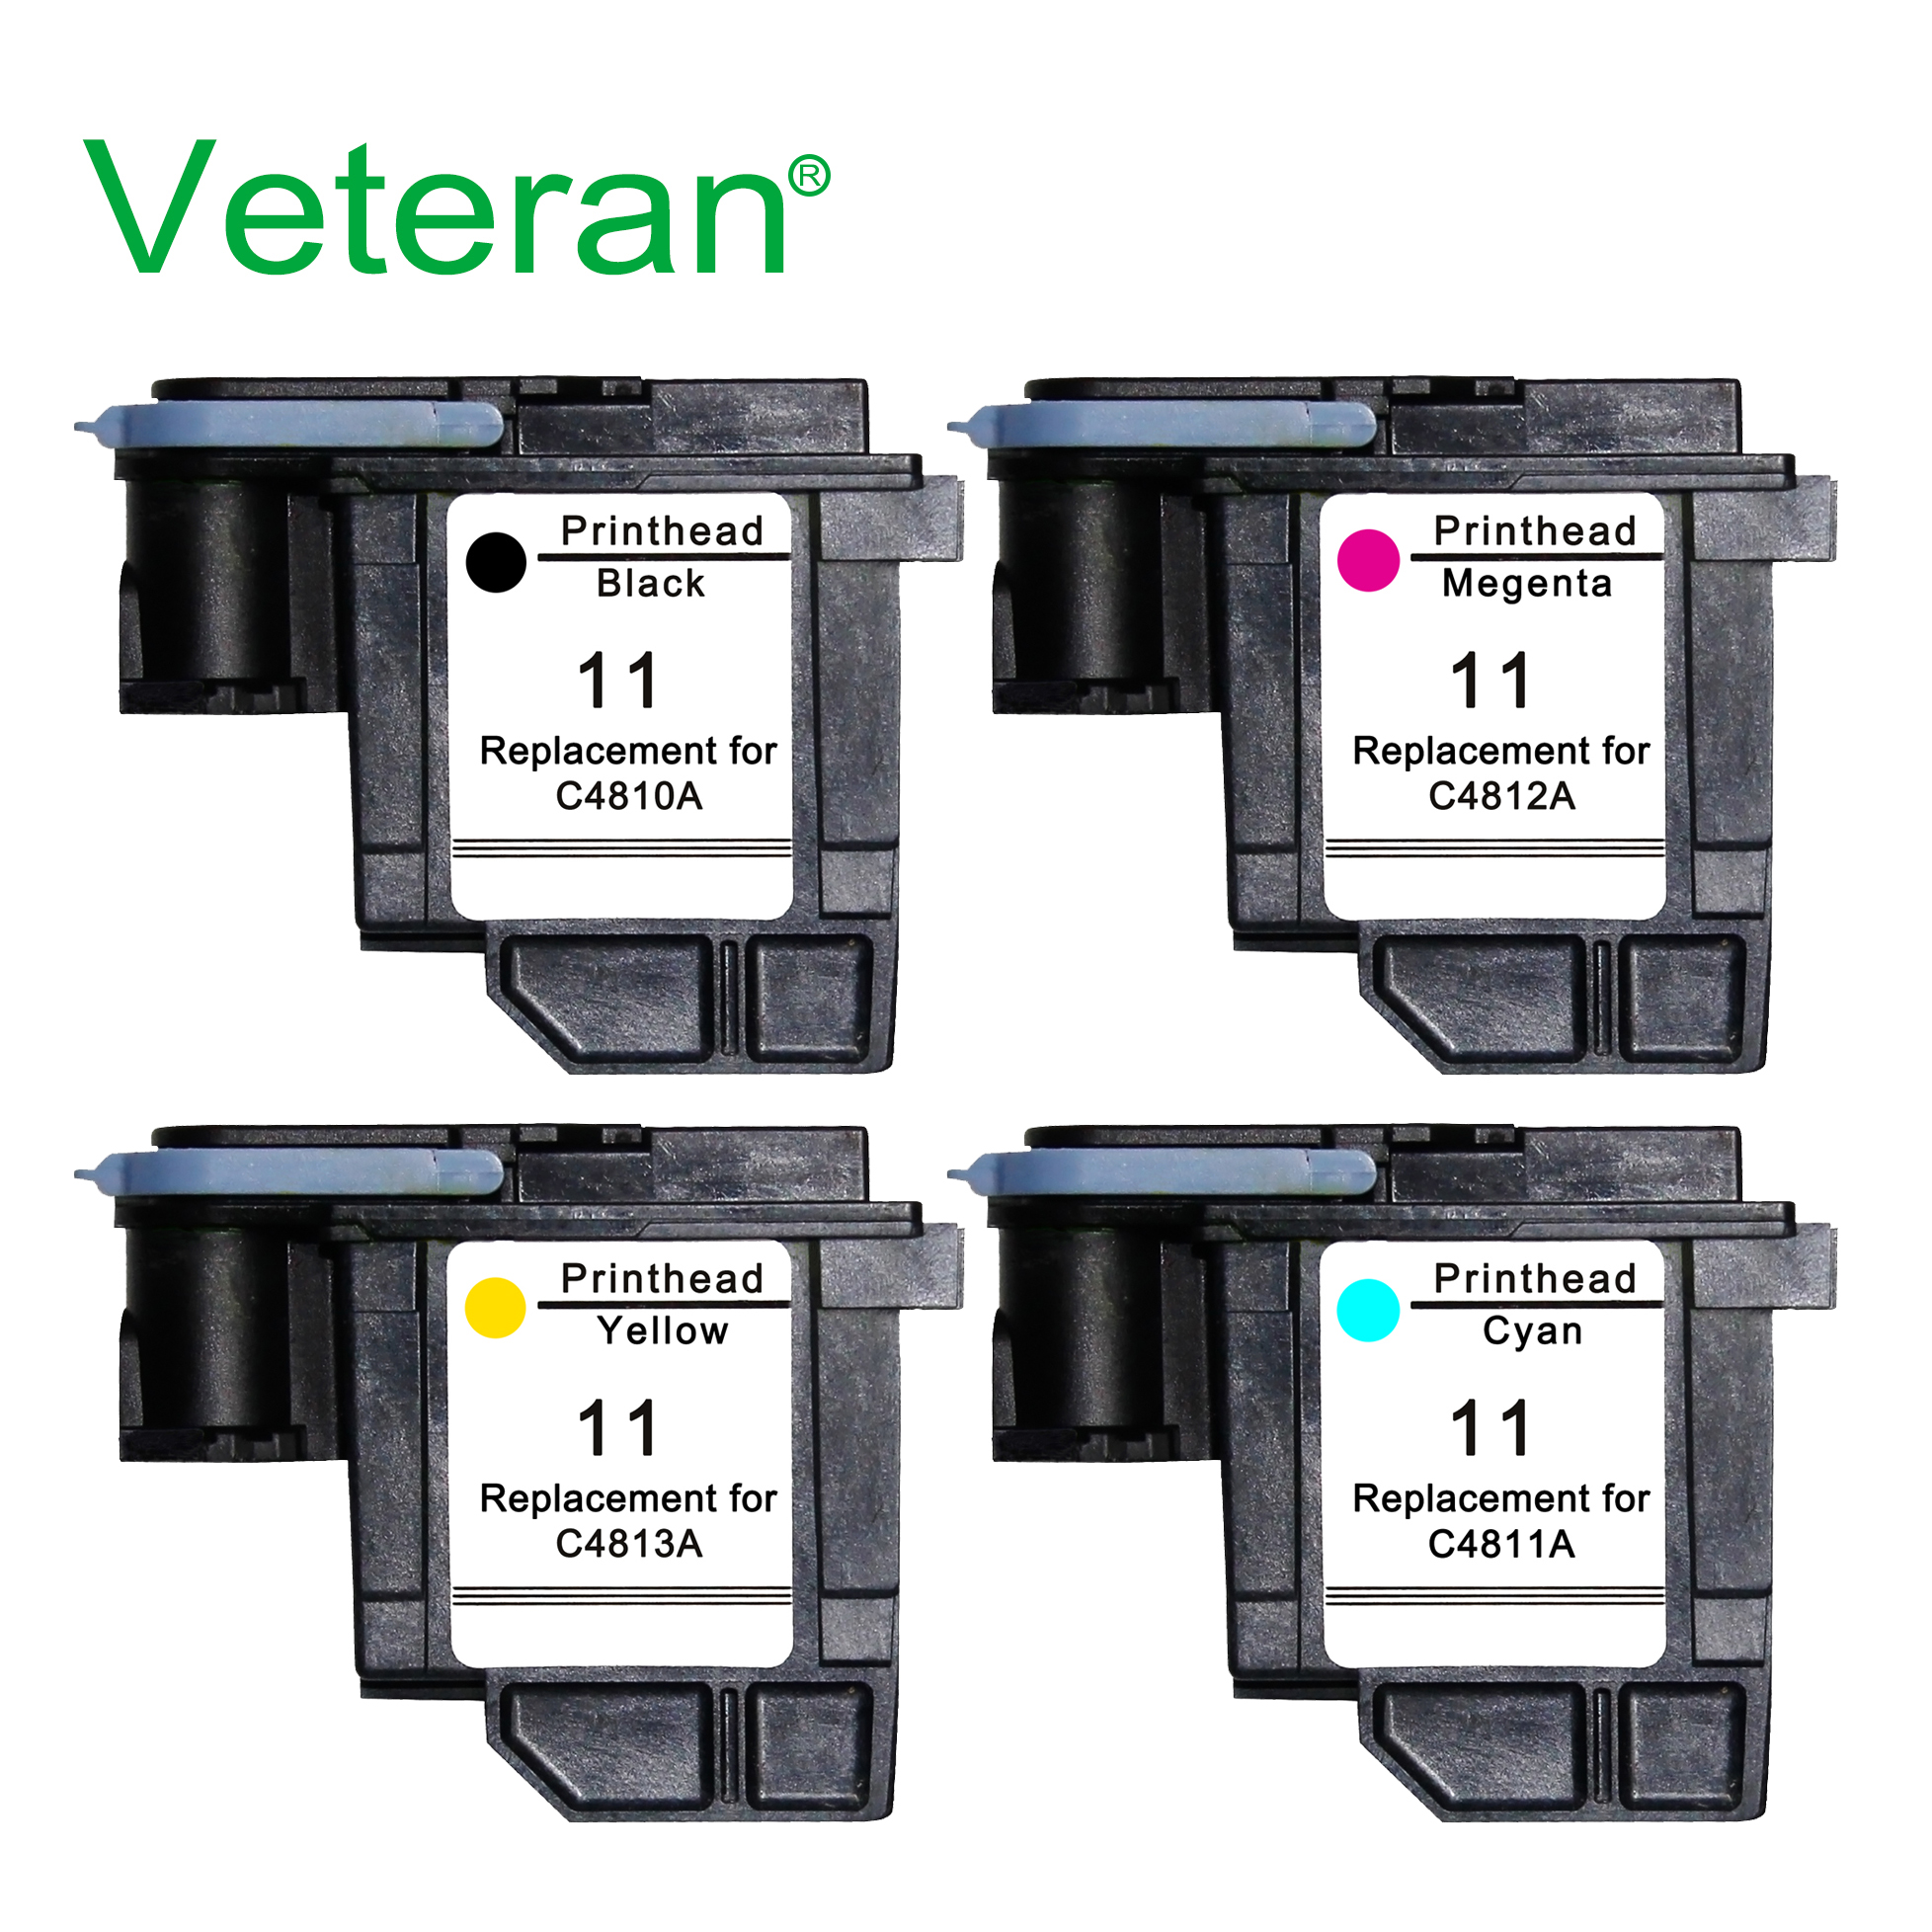 Veteran C4810A C4811A C4812A C4813A 11 printhead hp11 for HP Designjet 70 100 110 111